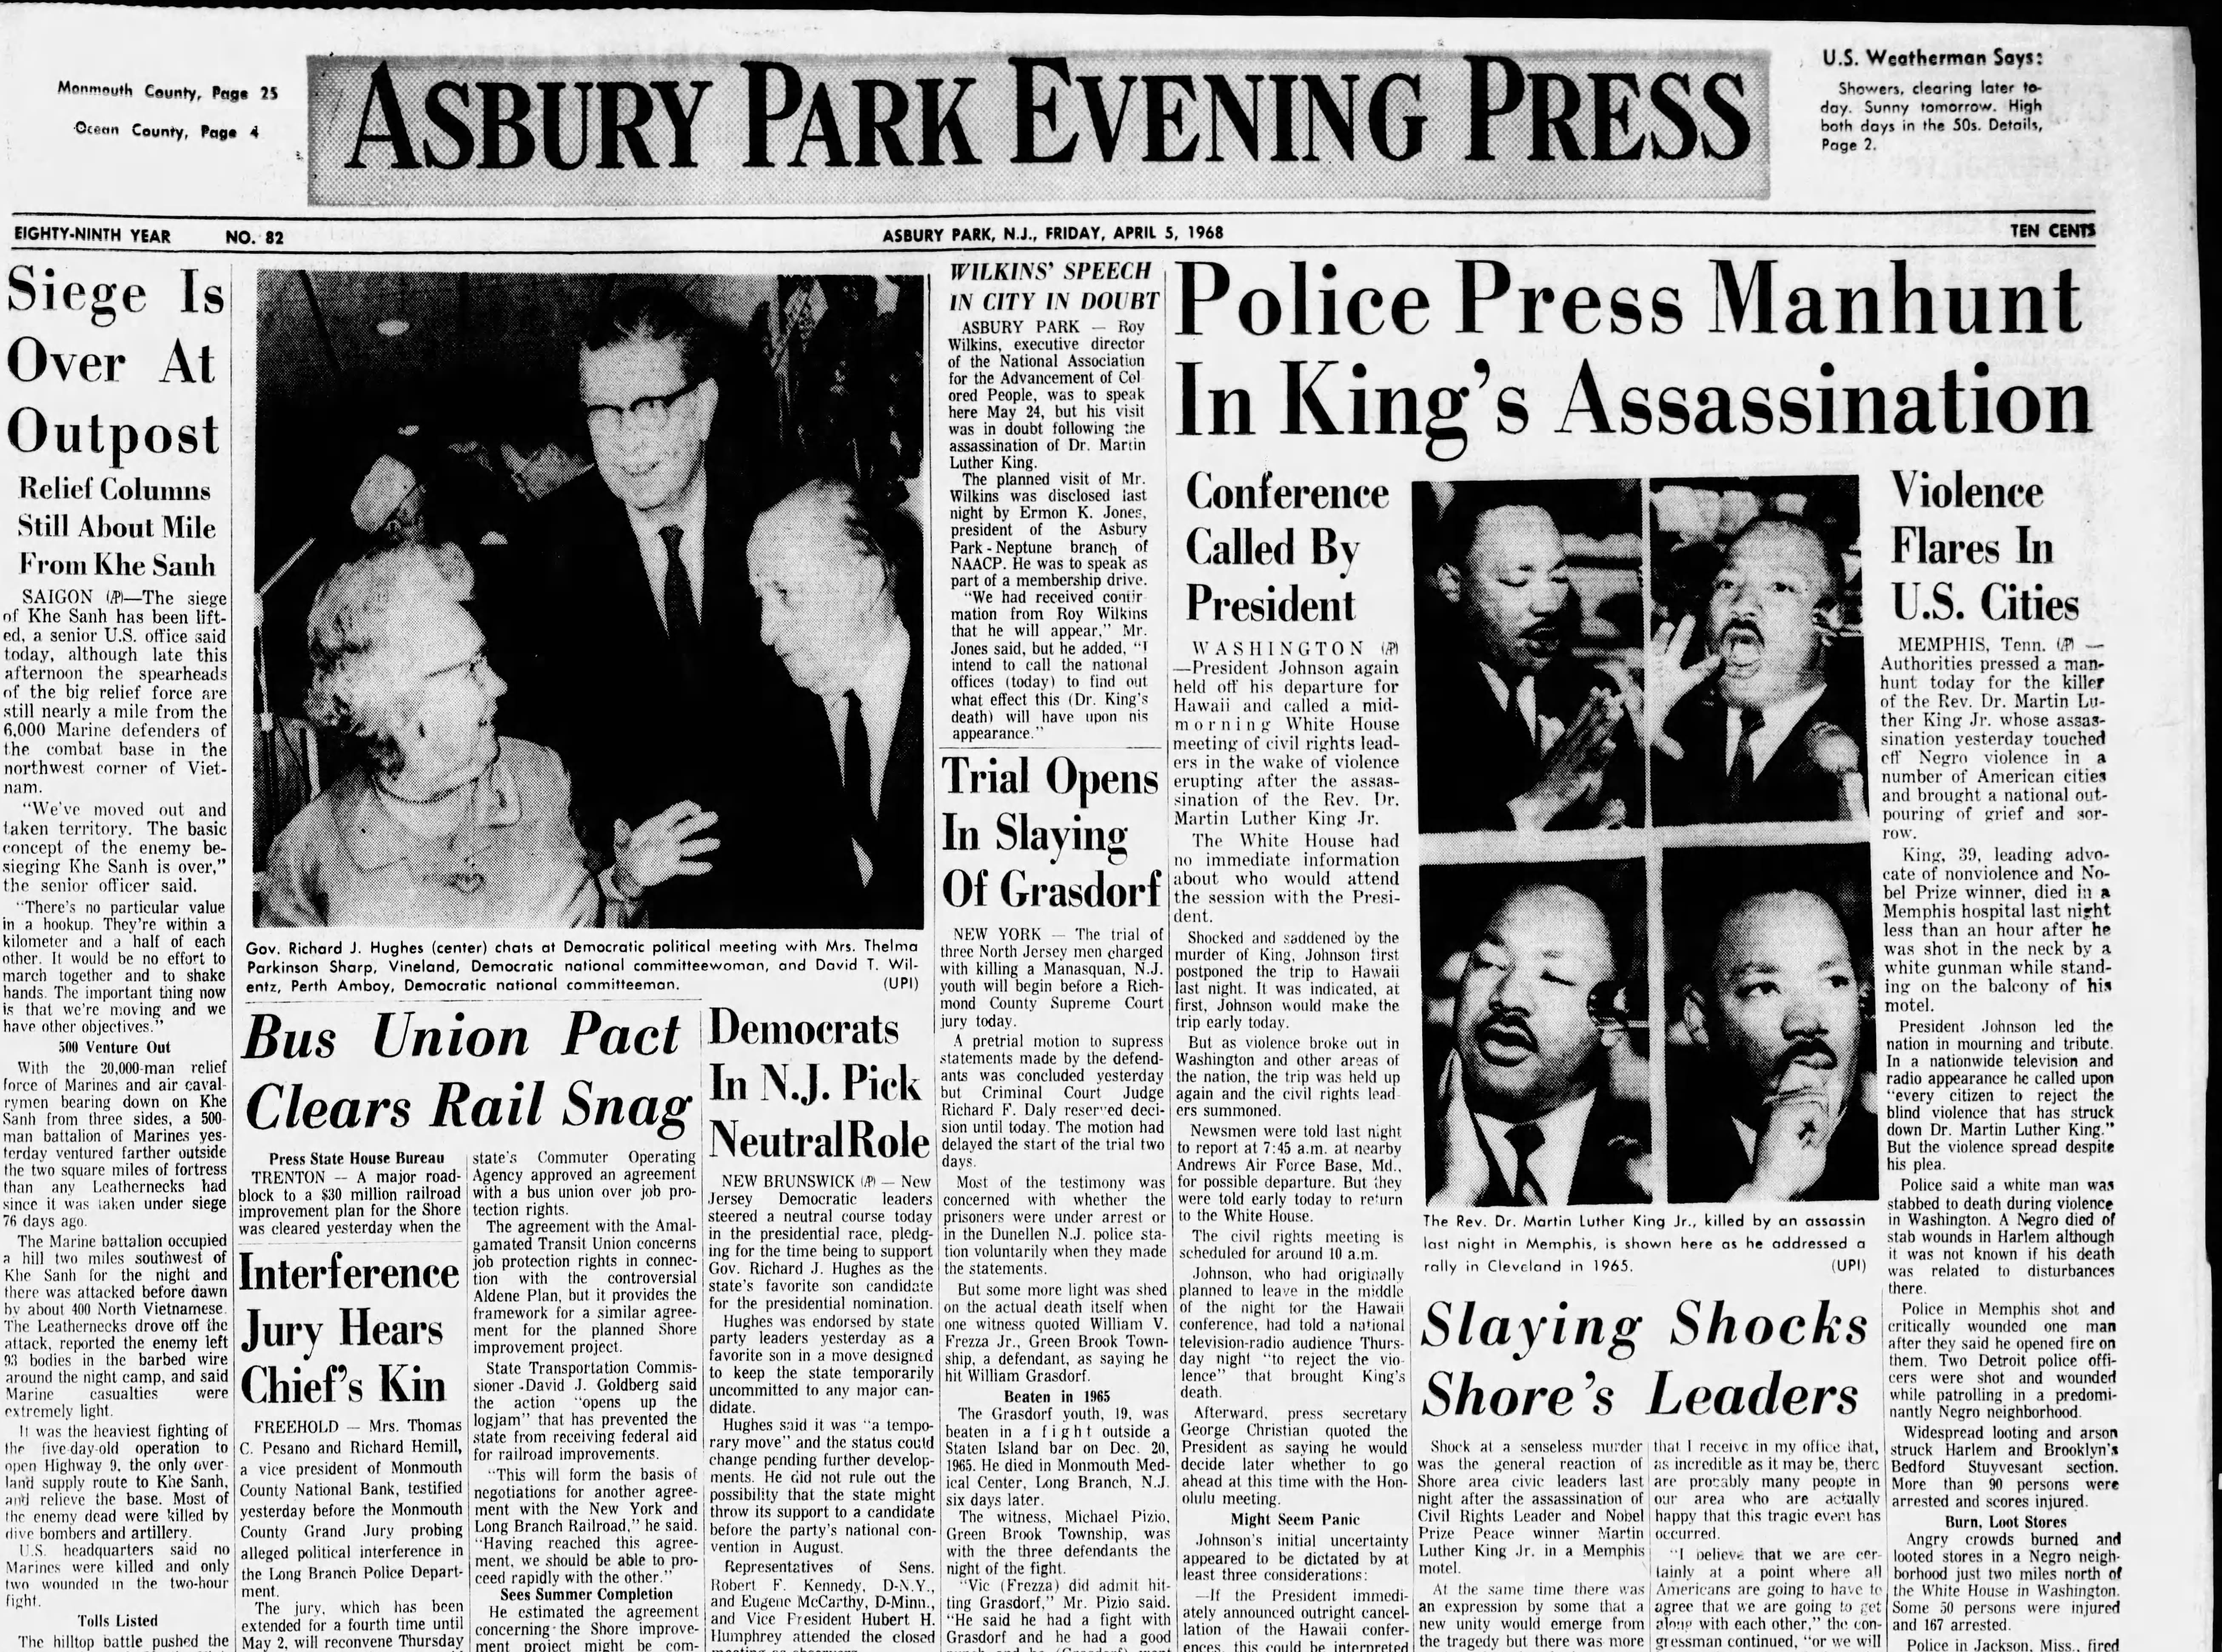 The assassination of Martin Luther King Jr. in Memphis, Tennessee and Shore reaction to his death is covered in the Friday, April 5, 1968 edition, the day after King's death.